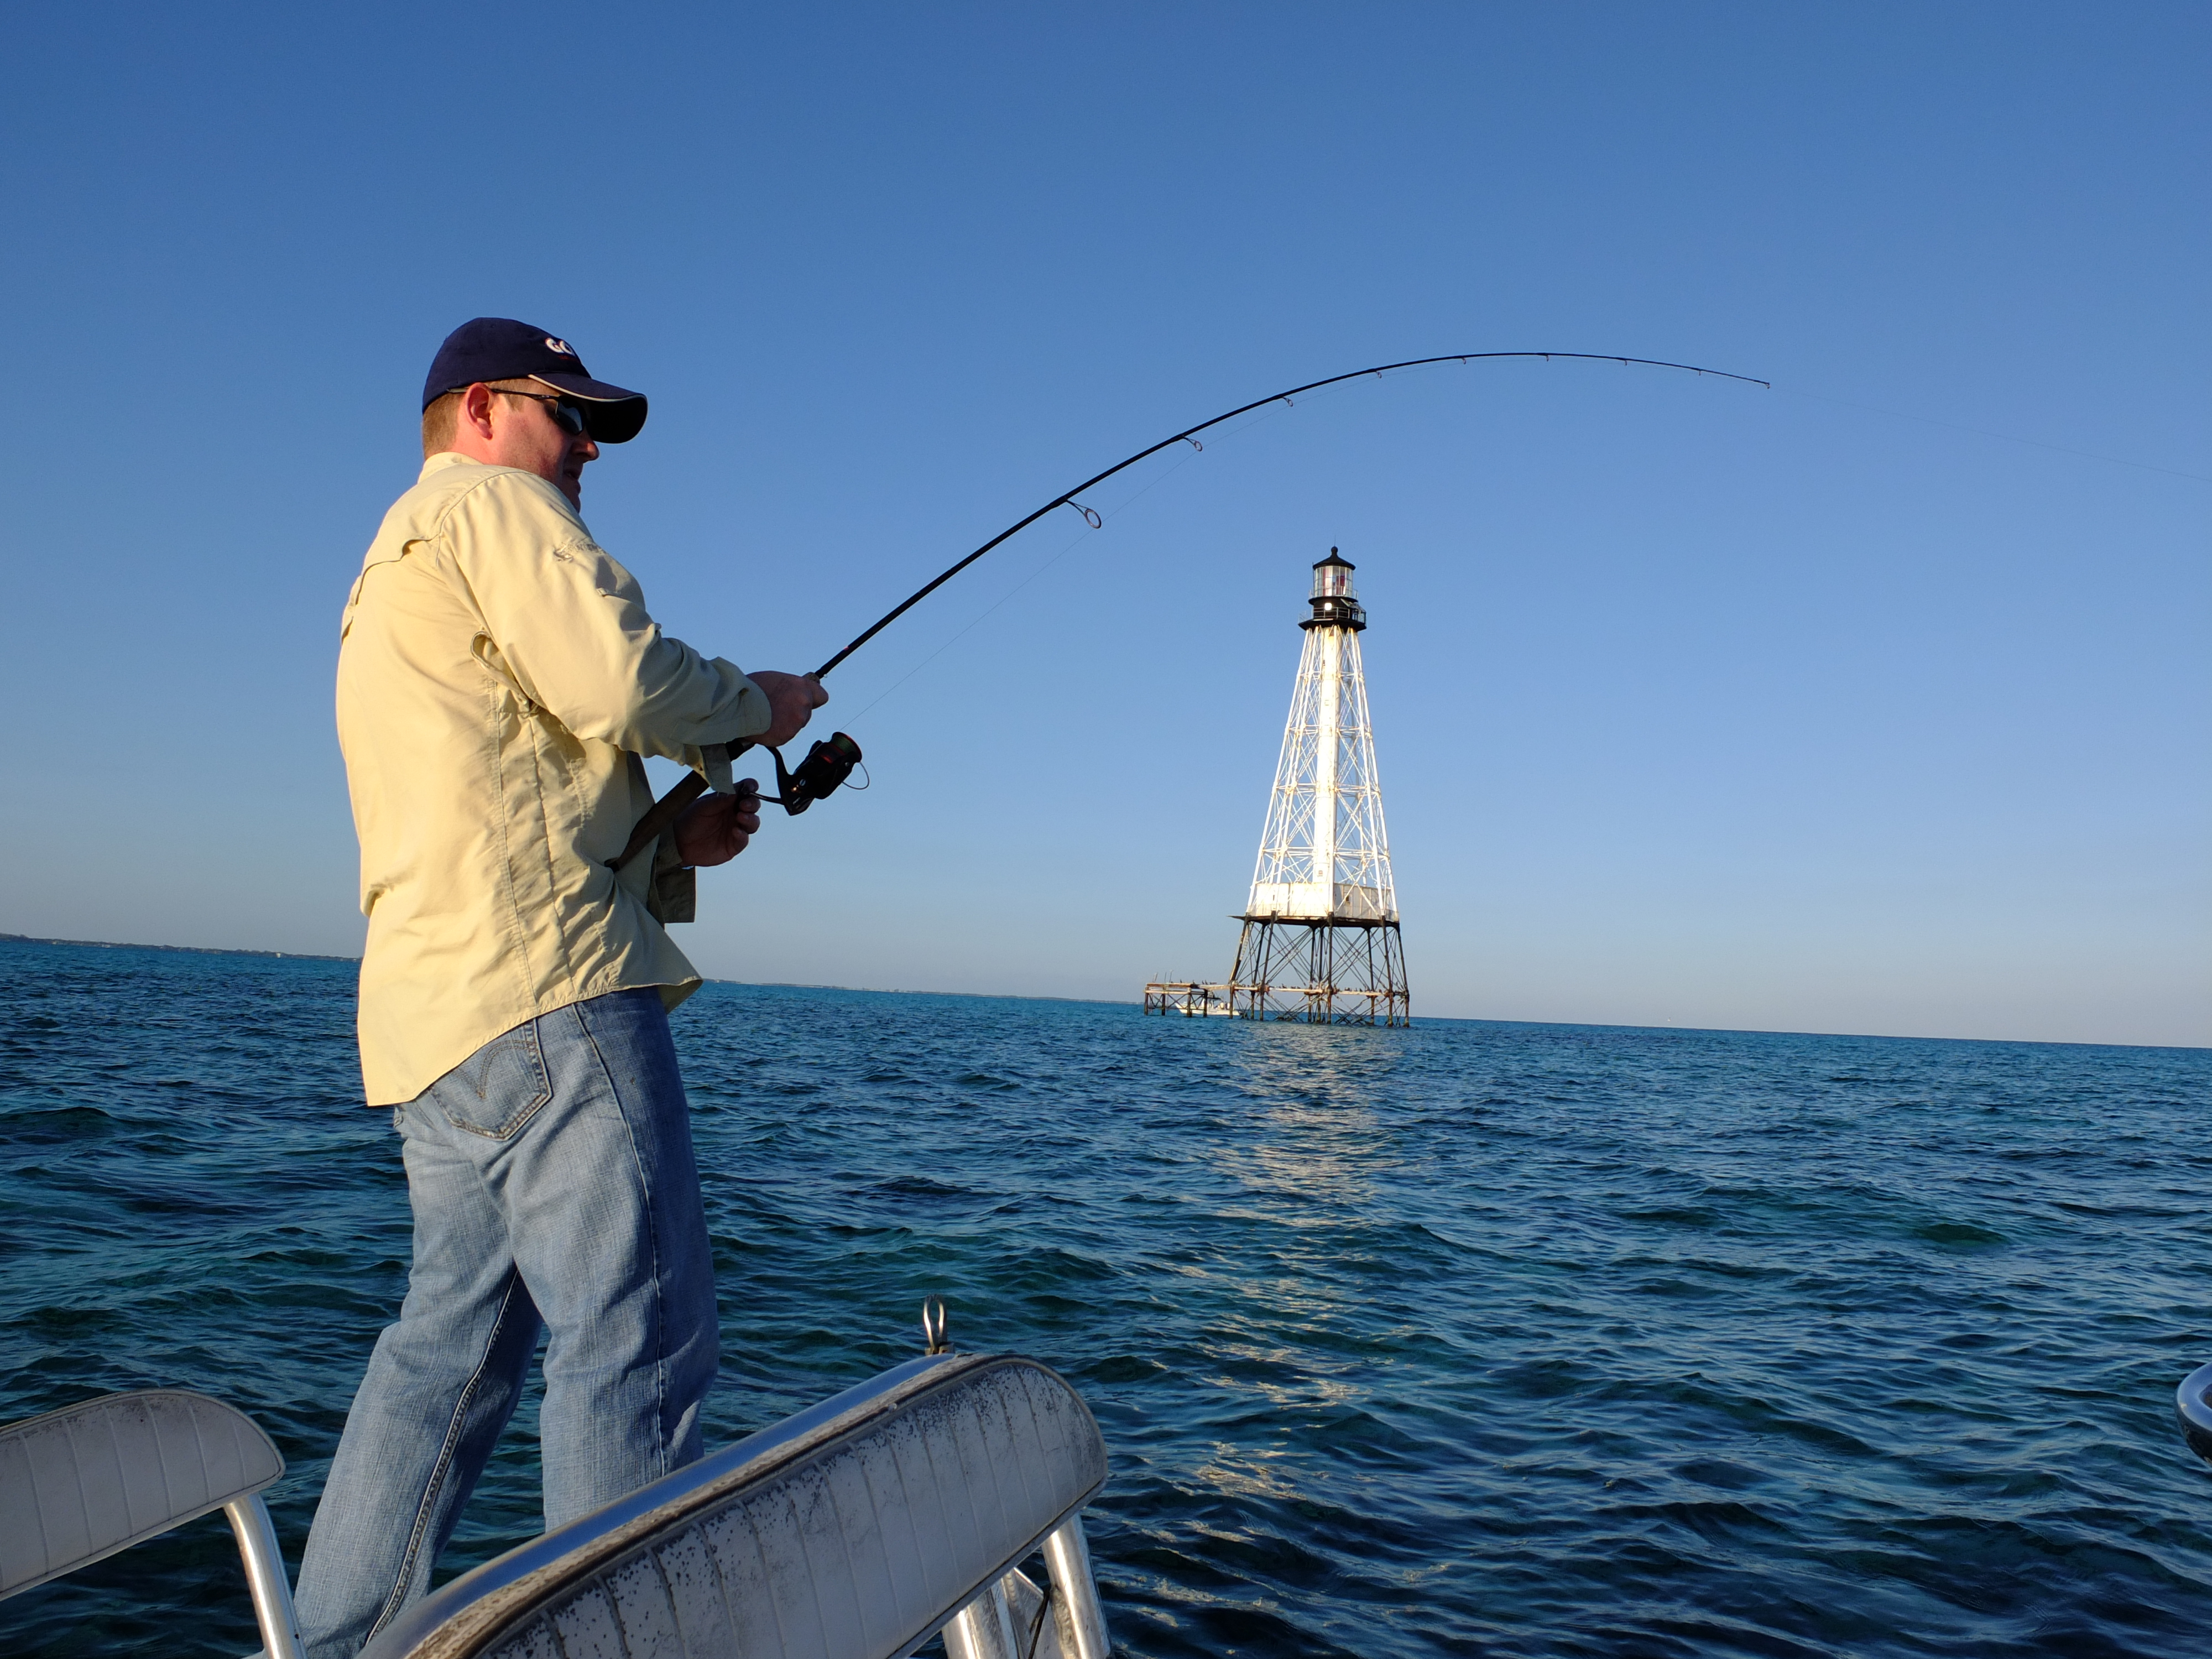 Winter time monsters are lurking jan 10 2012 florida for Florida keys fishing report